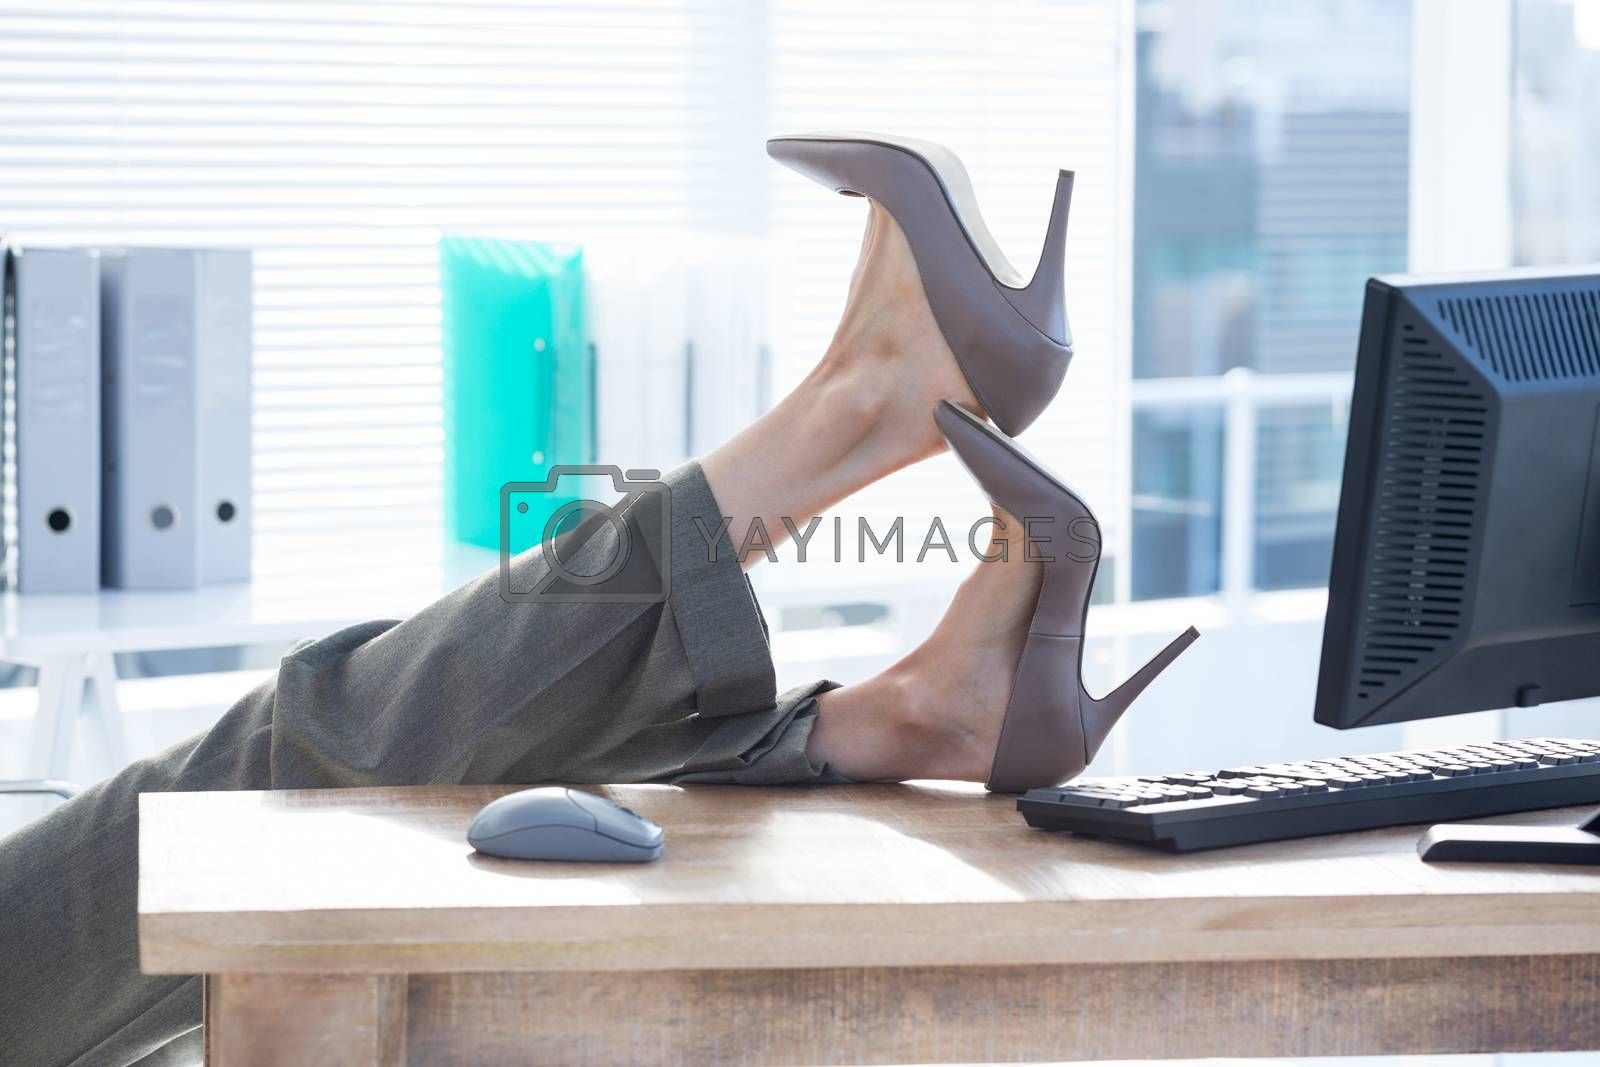 Royalty free image of Businesswoman sitting on swivel chair with feet on desk  by Wavebreakmedia